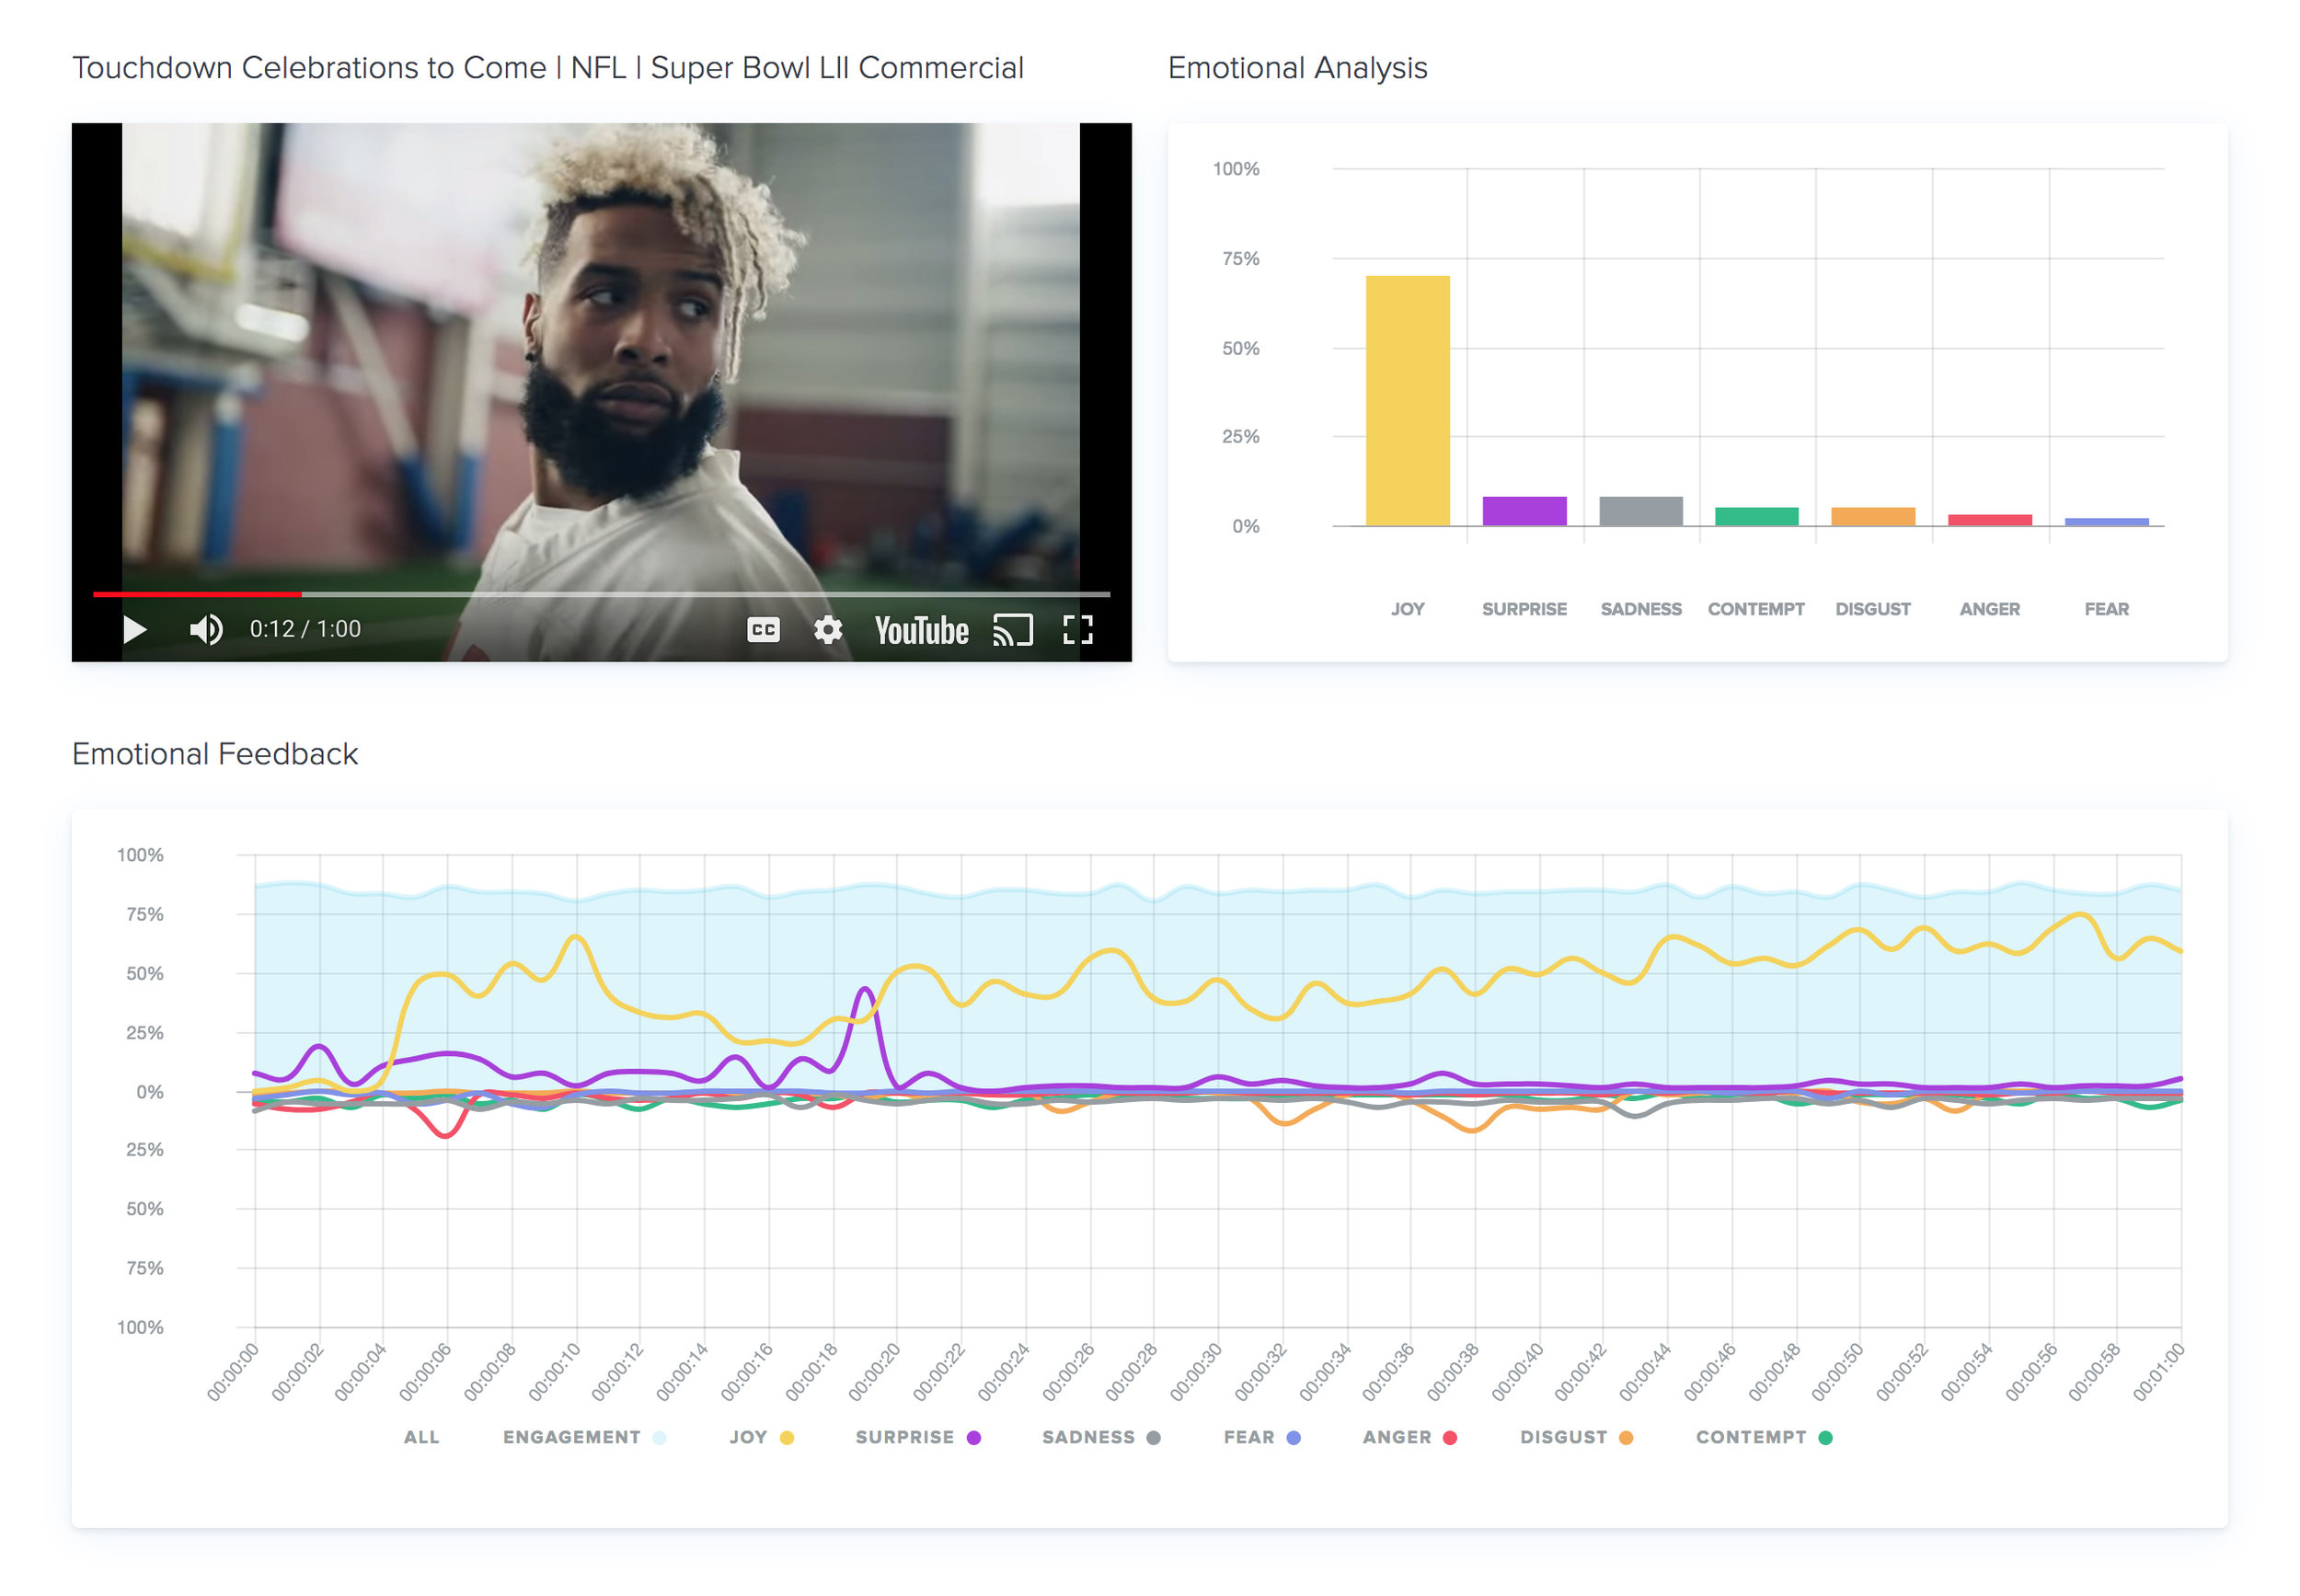 Measurements include an Overall Emotional Analysis, Real-time Emotional Feedback against the video timeline, and Engagement Score (eye tracking).